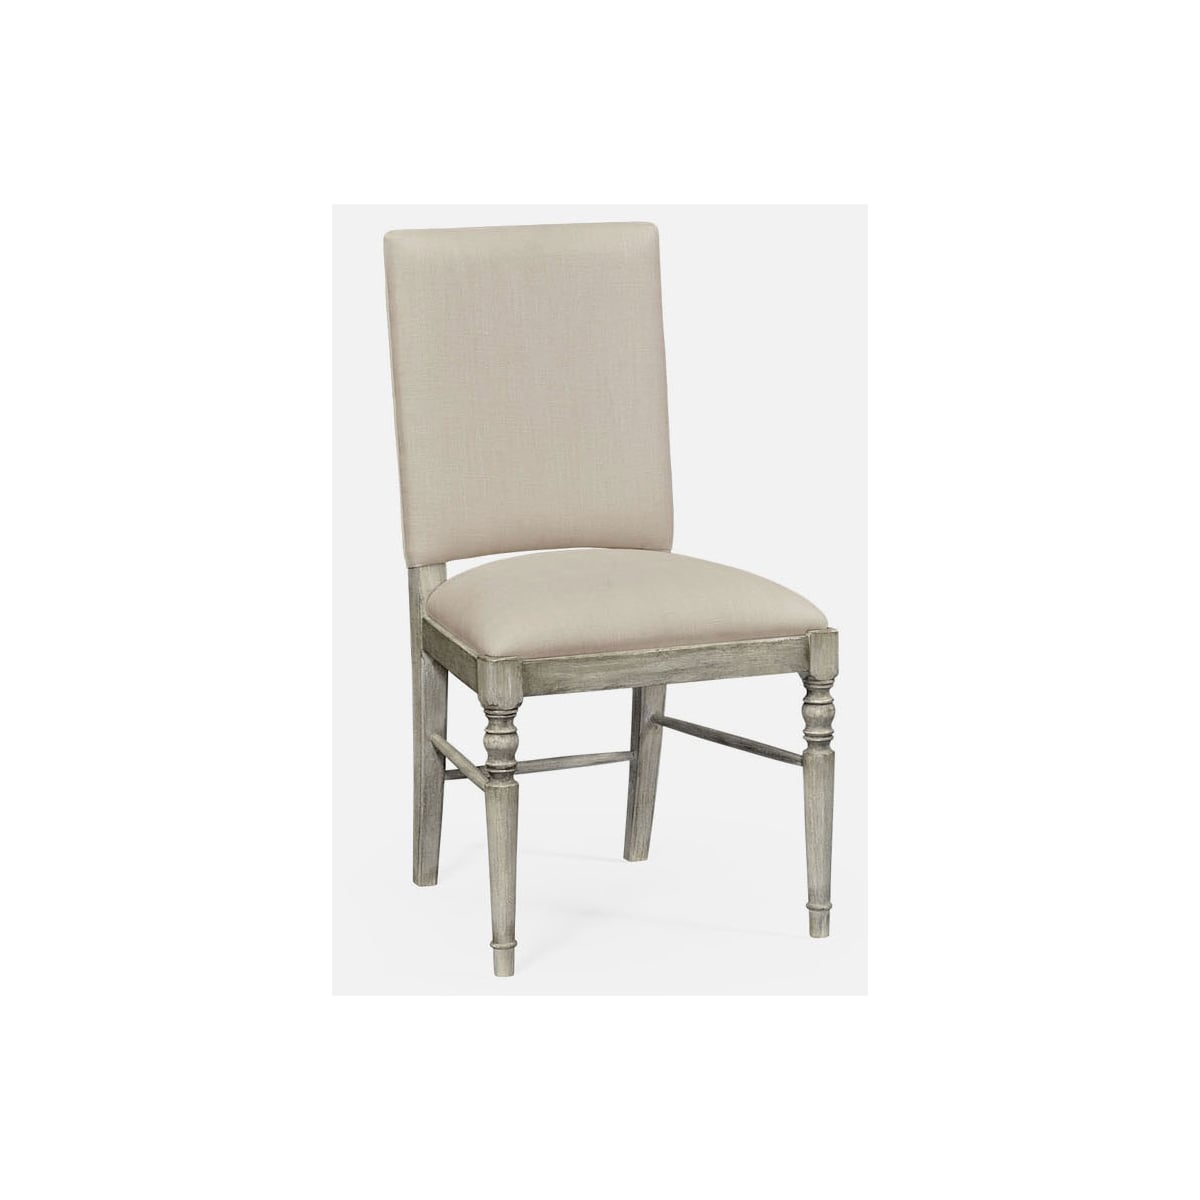 Rustic Grey Upholstered Dining Chair  Swanky Interiors